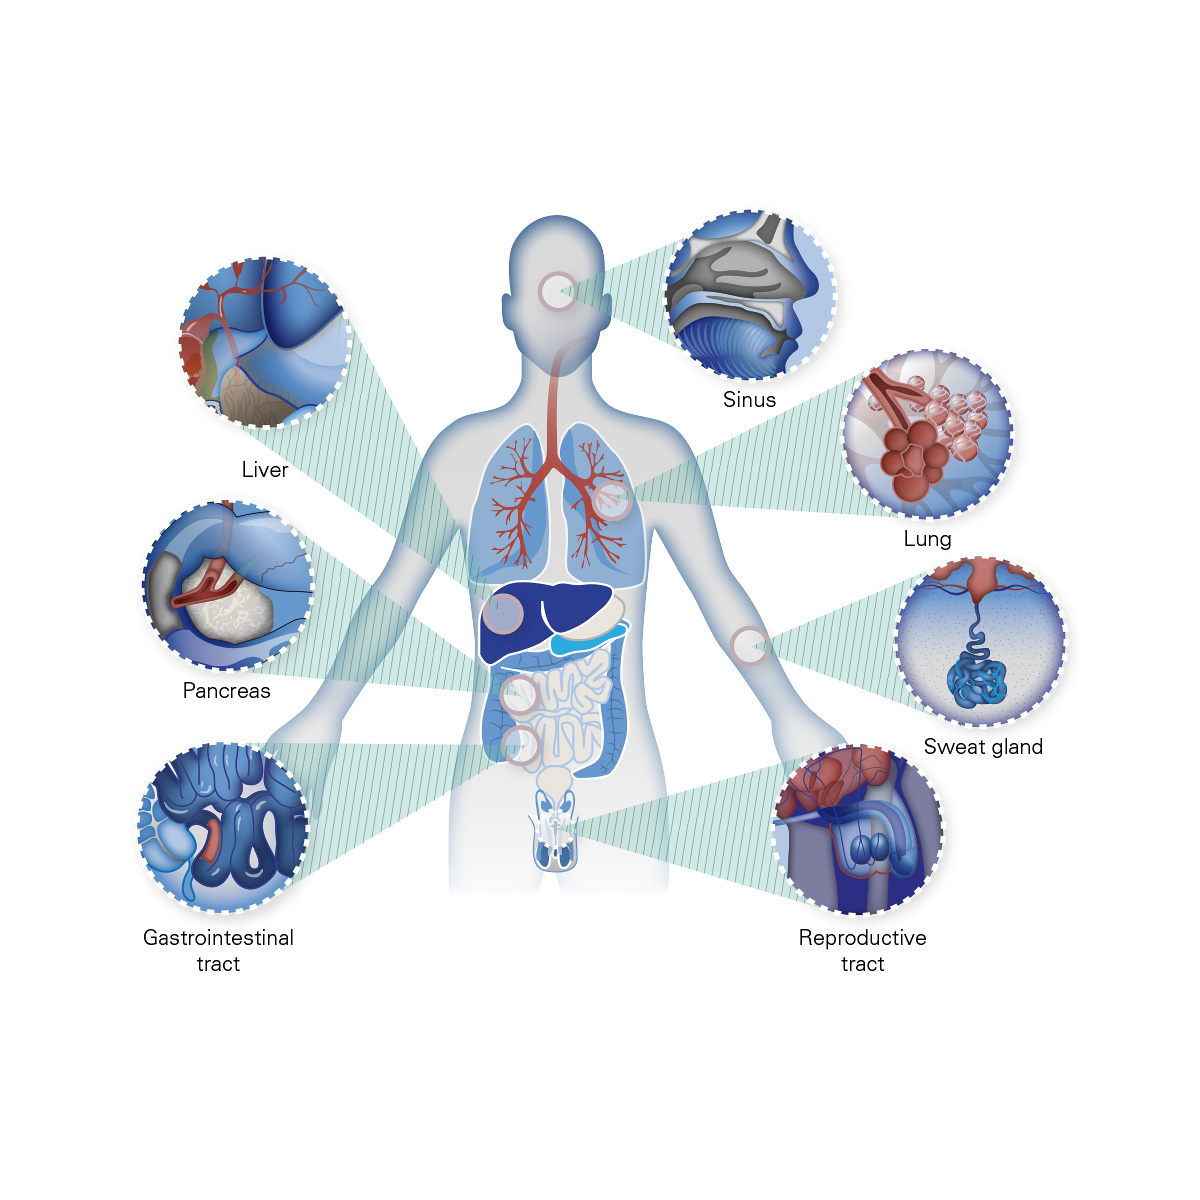 CFTR Medical Illustration 7